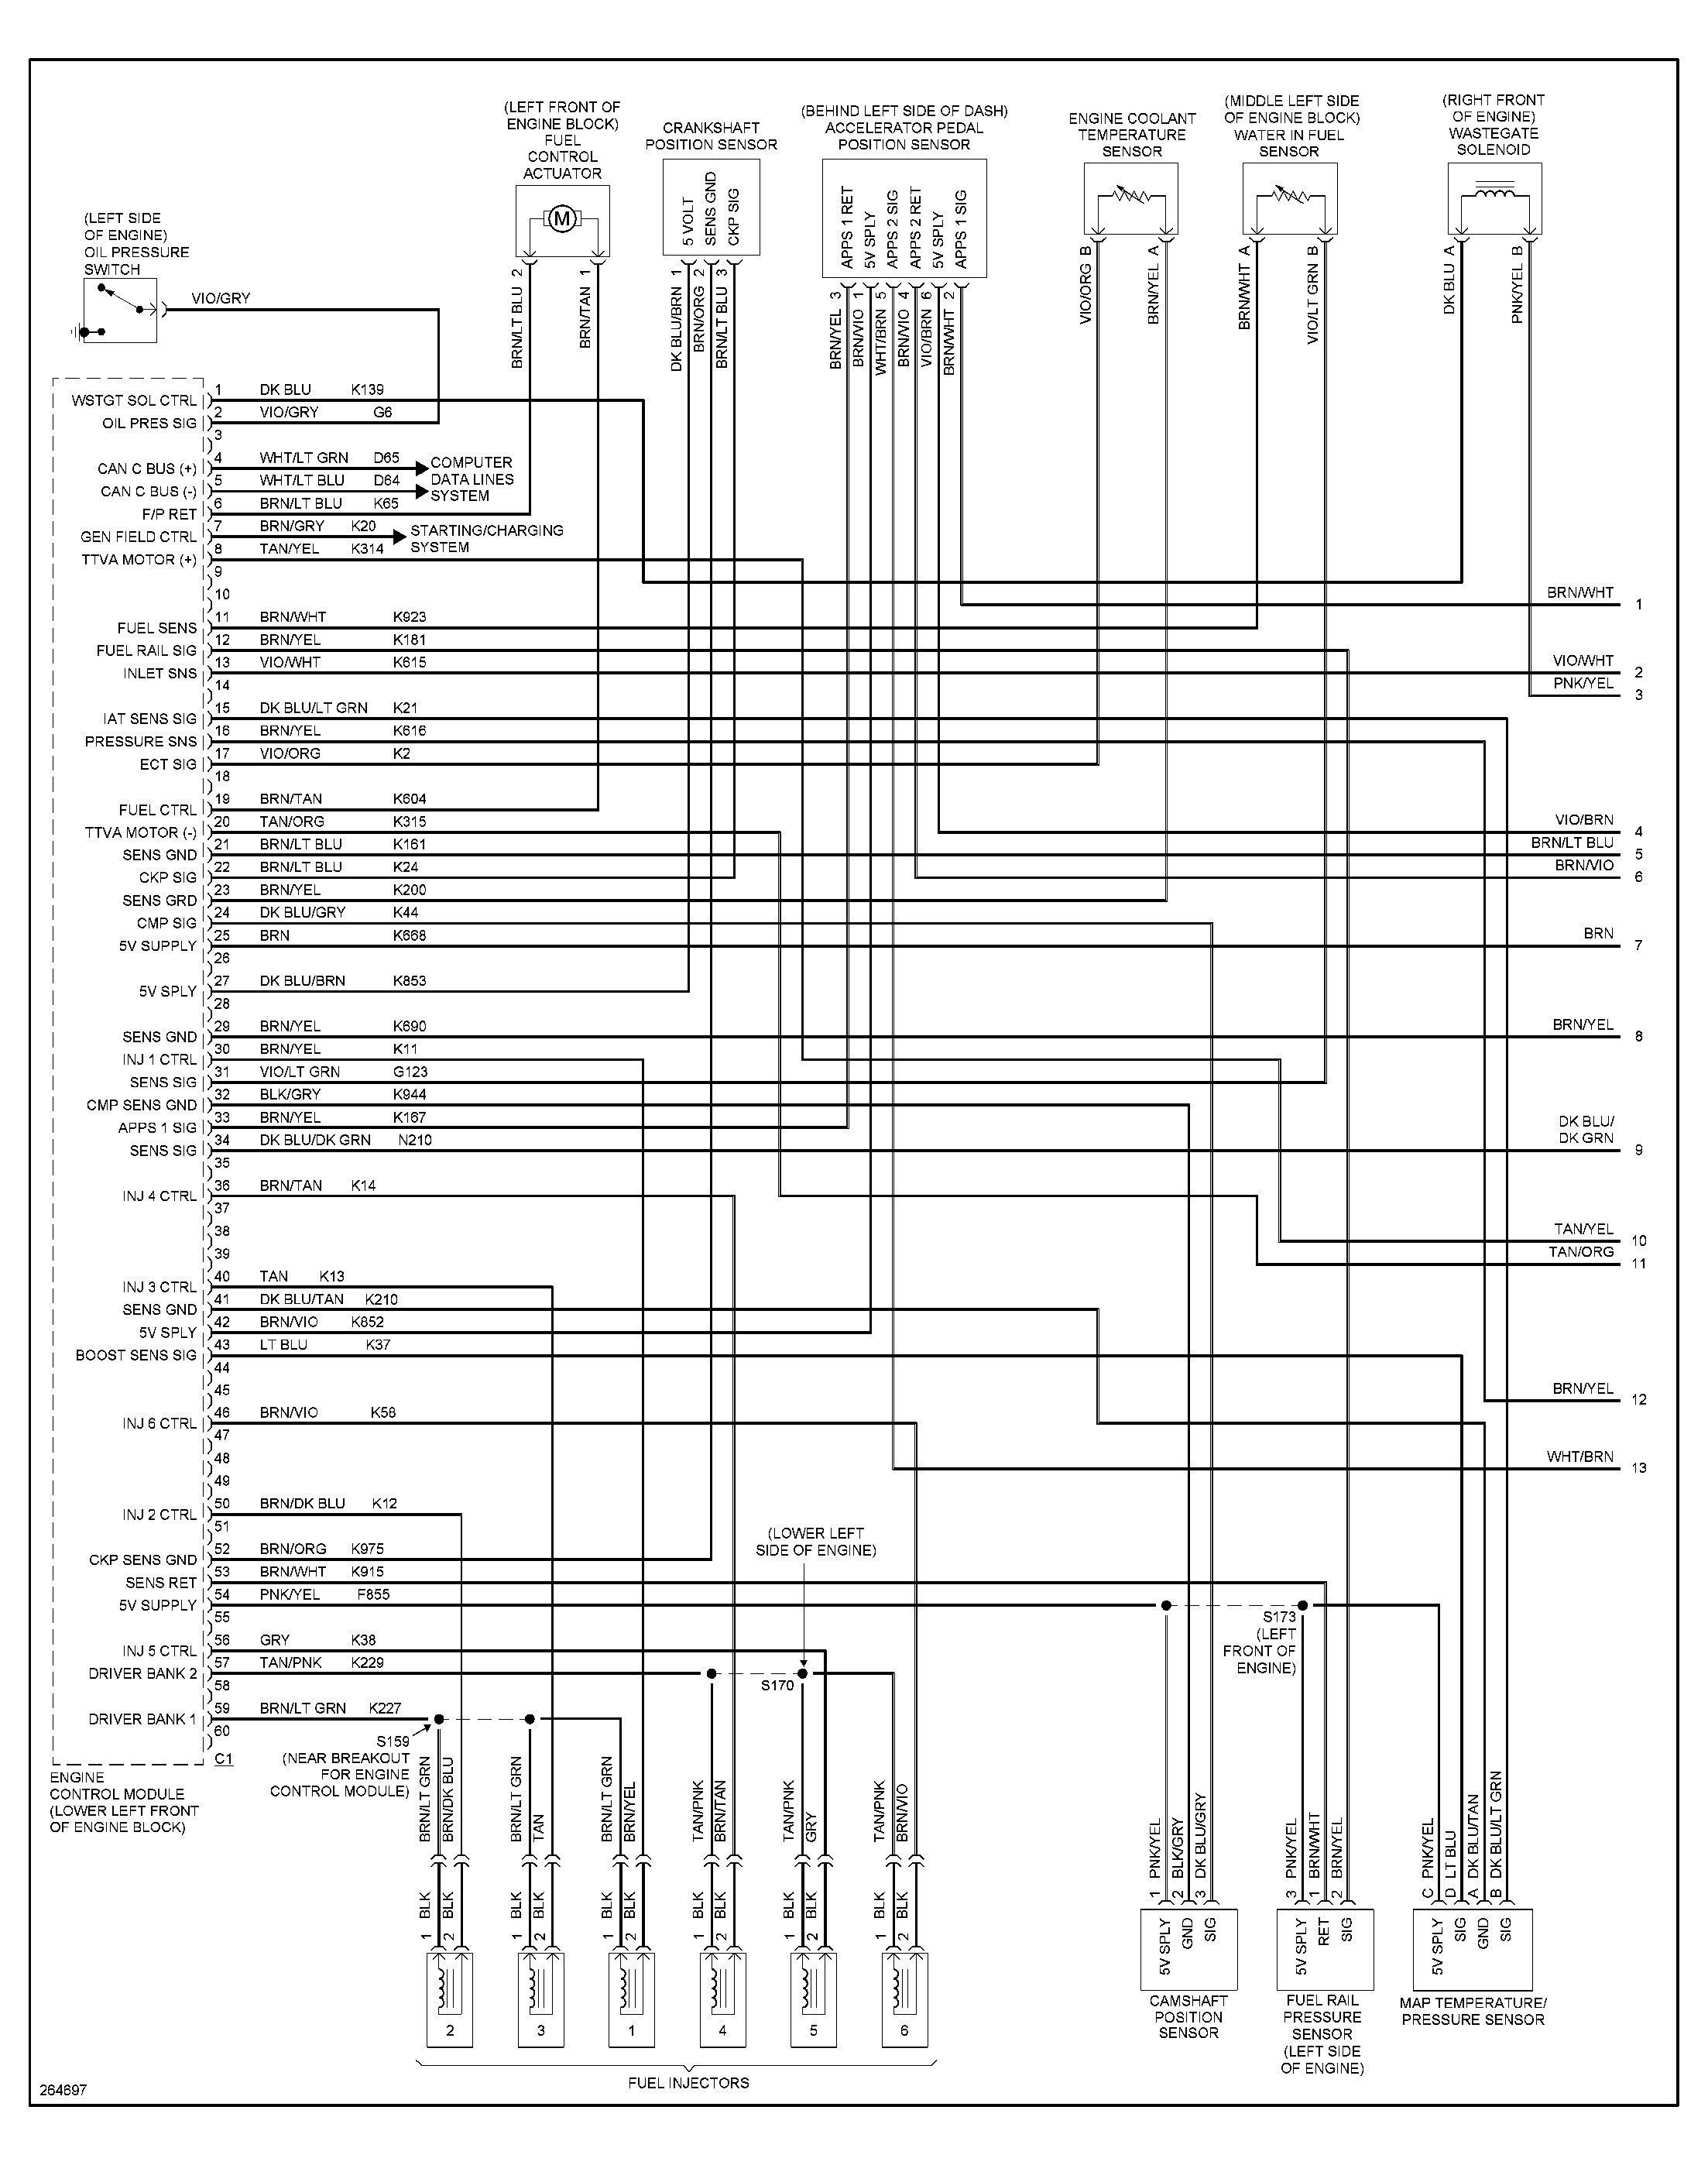 dodge ram 1500 fuel system diagram dodge ram schematic index wiring diagrams  dodge ram schematic index wiring diagrams